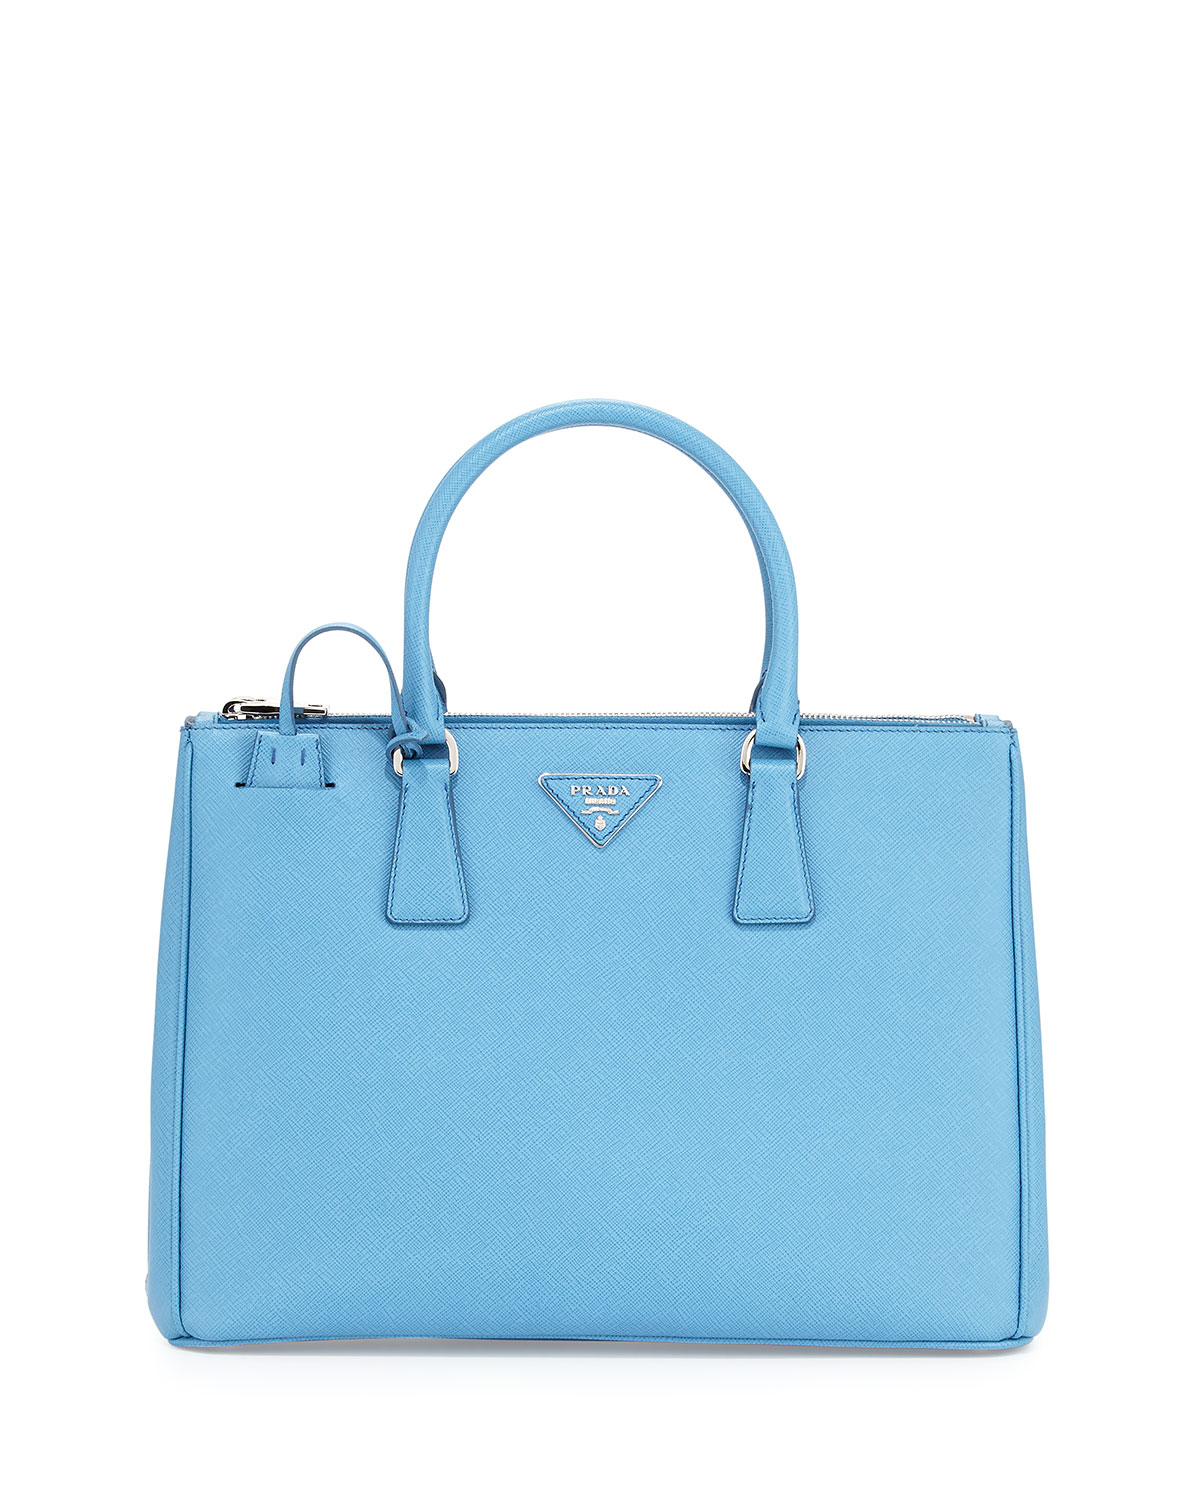 4636cf4147e8 Prada Saffiano Lux Medium Double-Zip Tote Bag, Light Blue (Mare ...